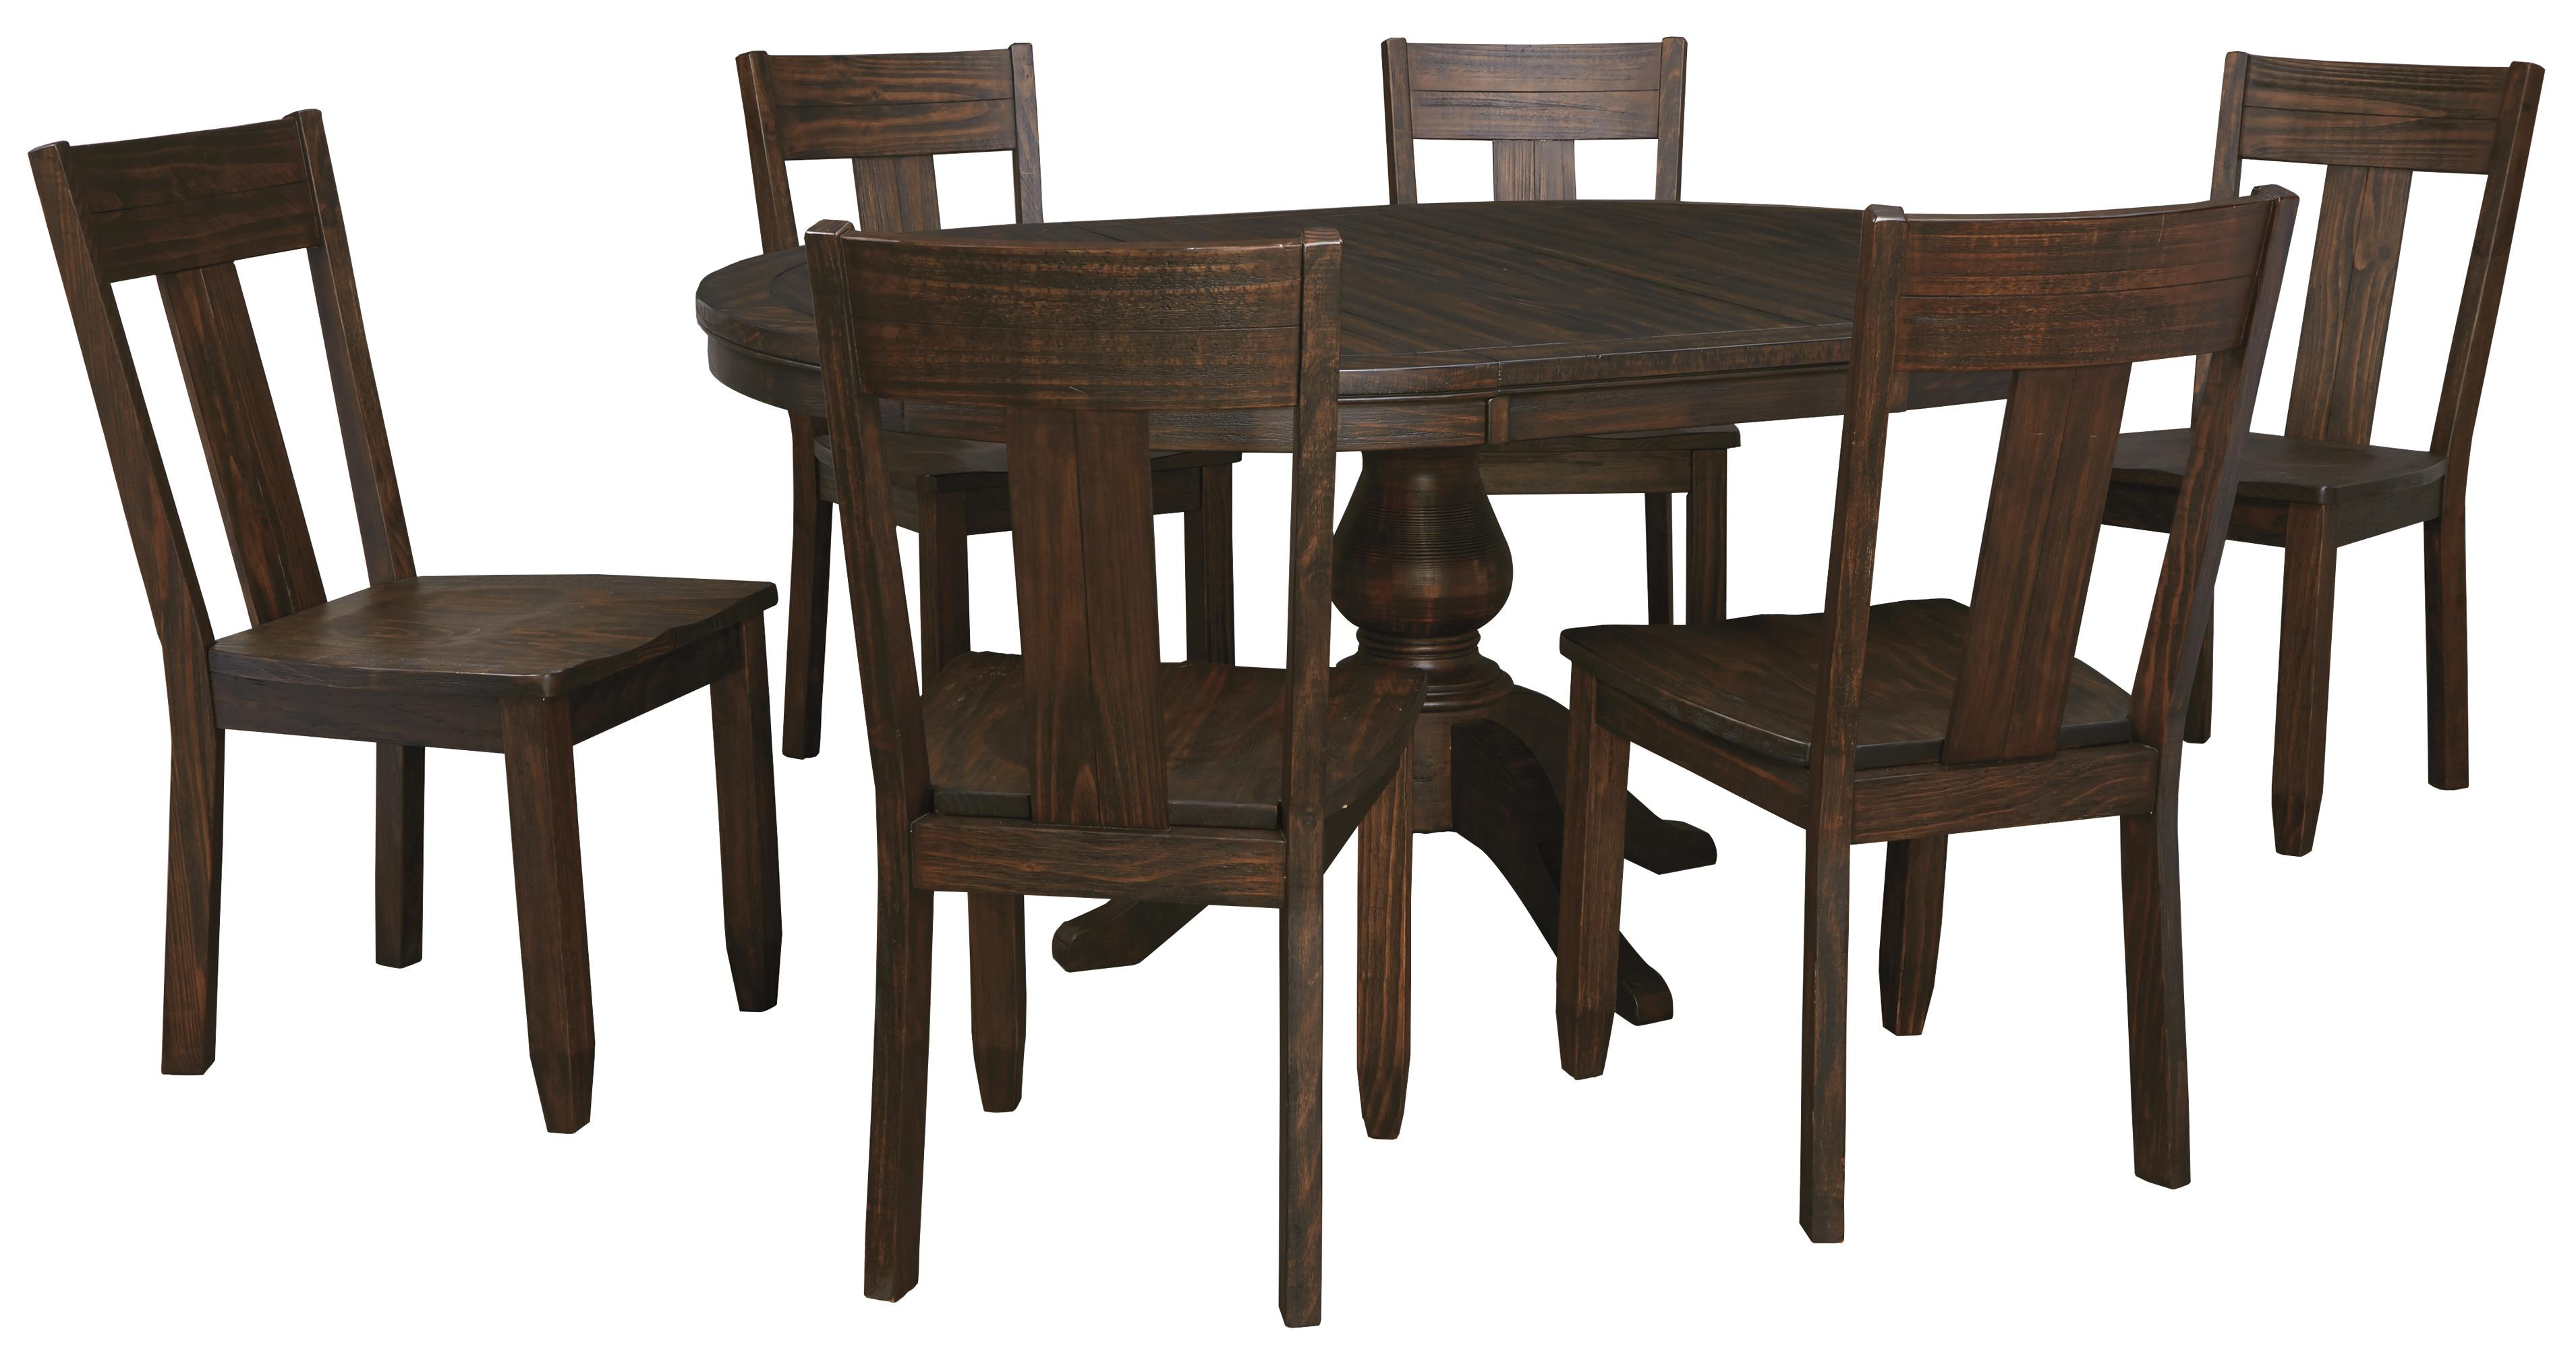 signature design by ashley trudell 7 piece oval dining table set with wood seat side chairs. Black Bedroom Furniture Sets. Home Design Ideas